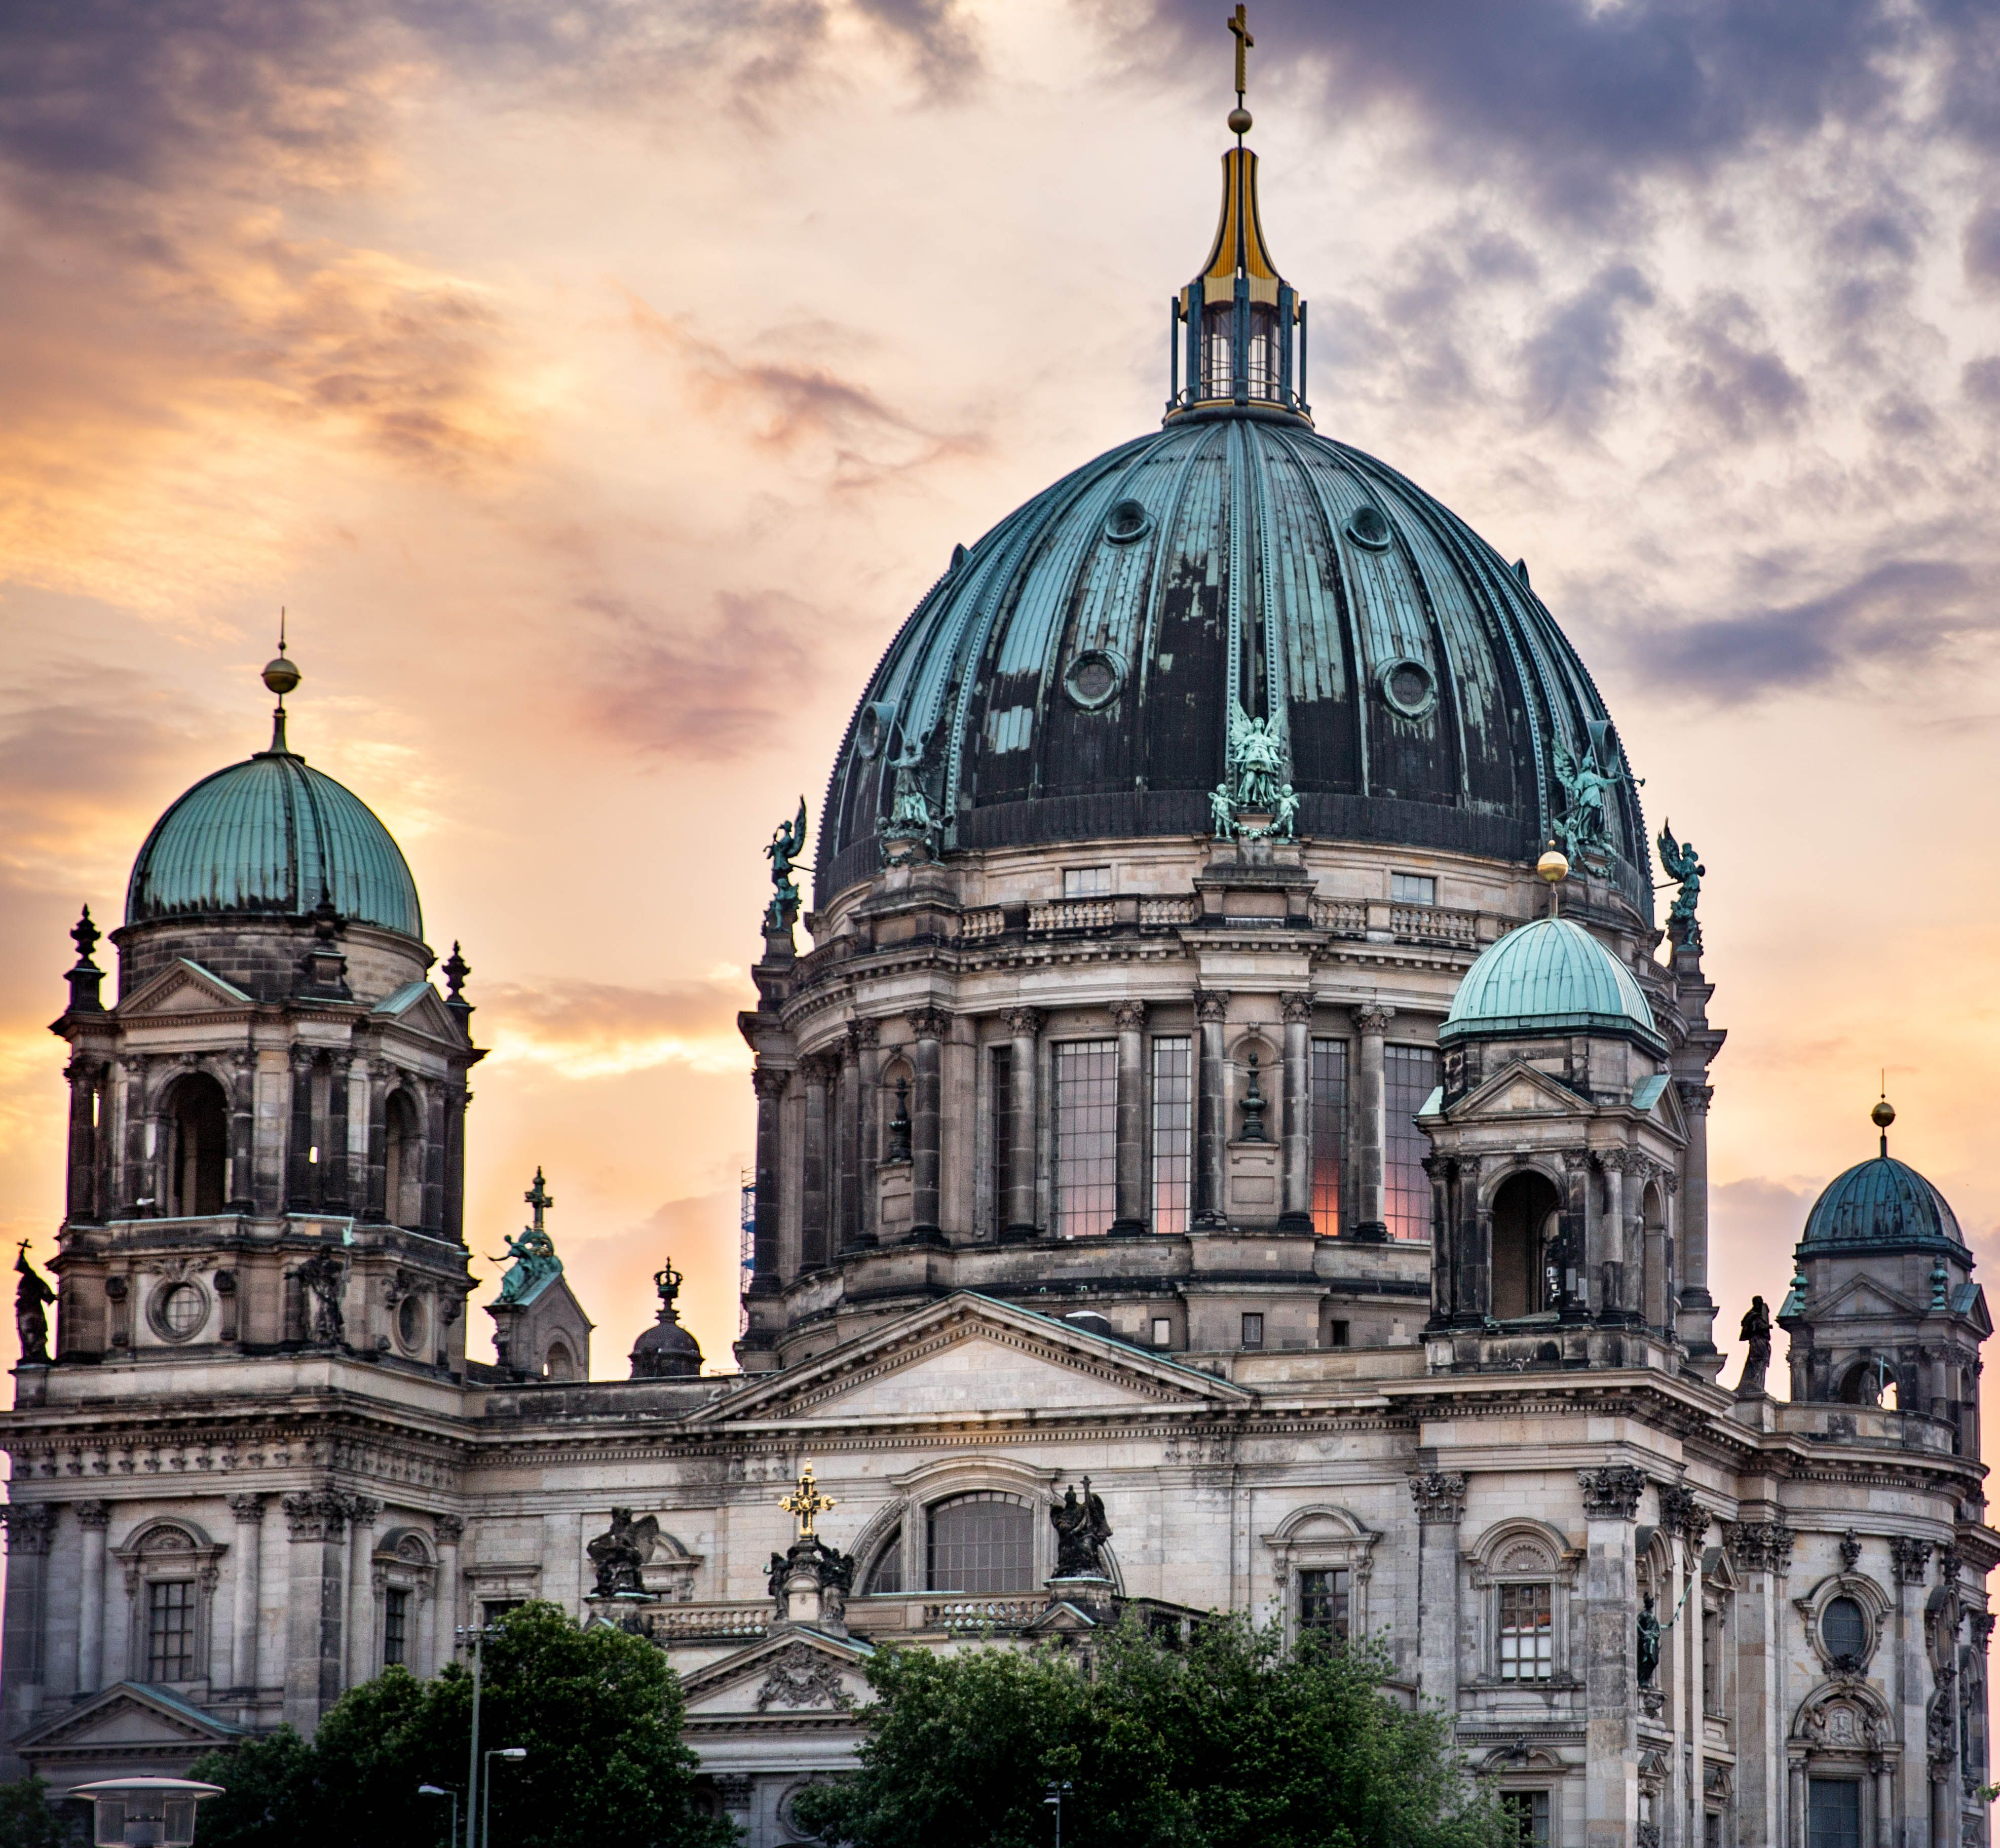 The top of Berlin Cathedral with the sun setting behind it.